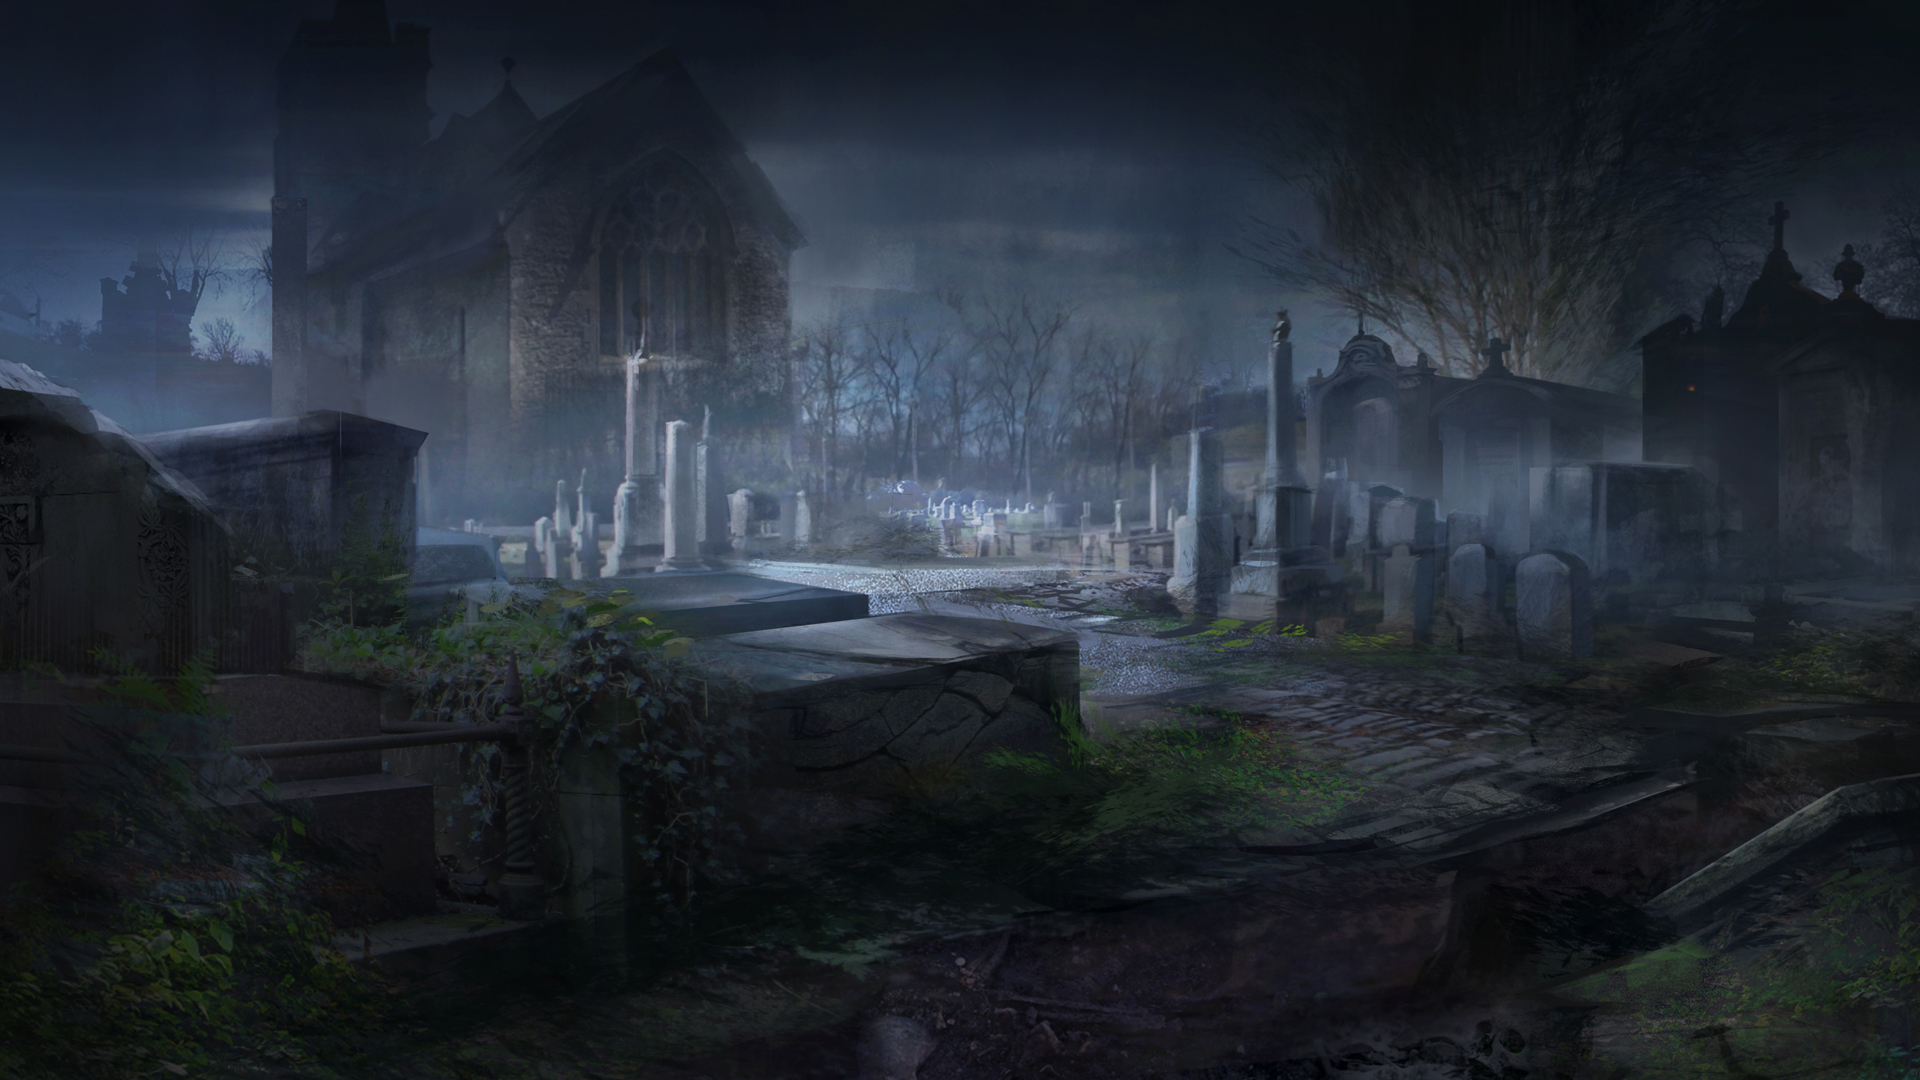 Gothic Fall Wallpaper Alone In The Dark Illumination Thoughts And Opinions On